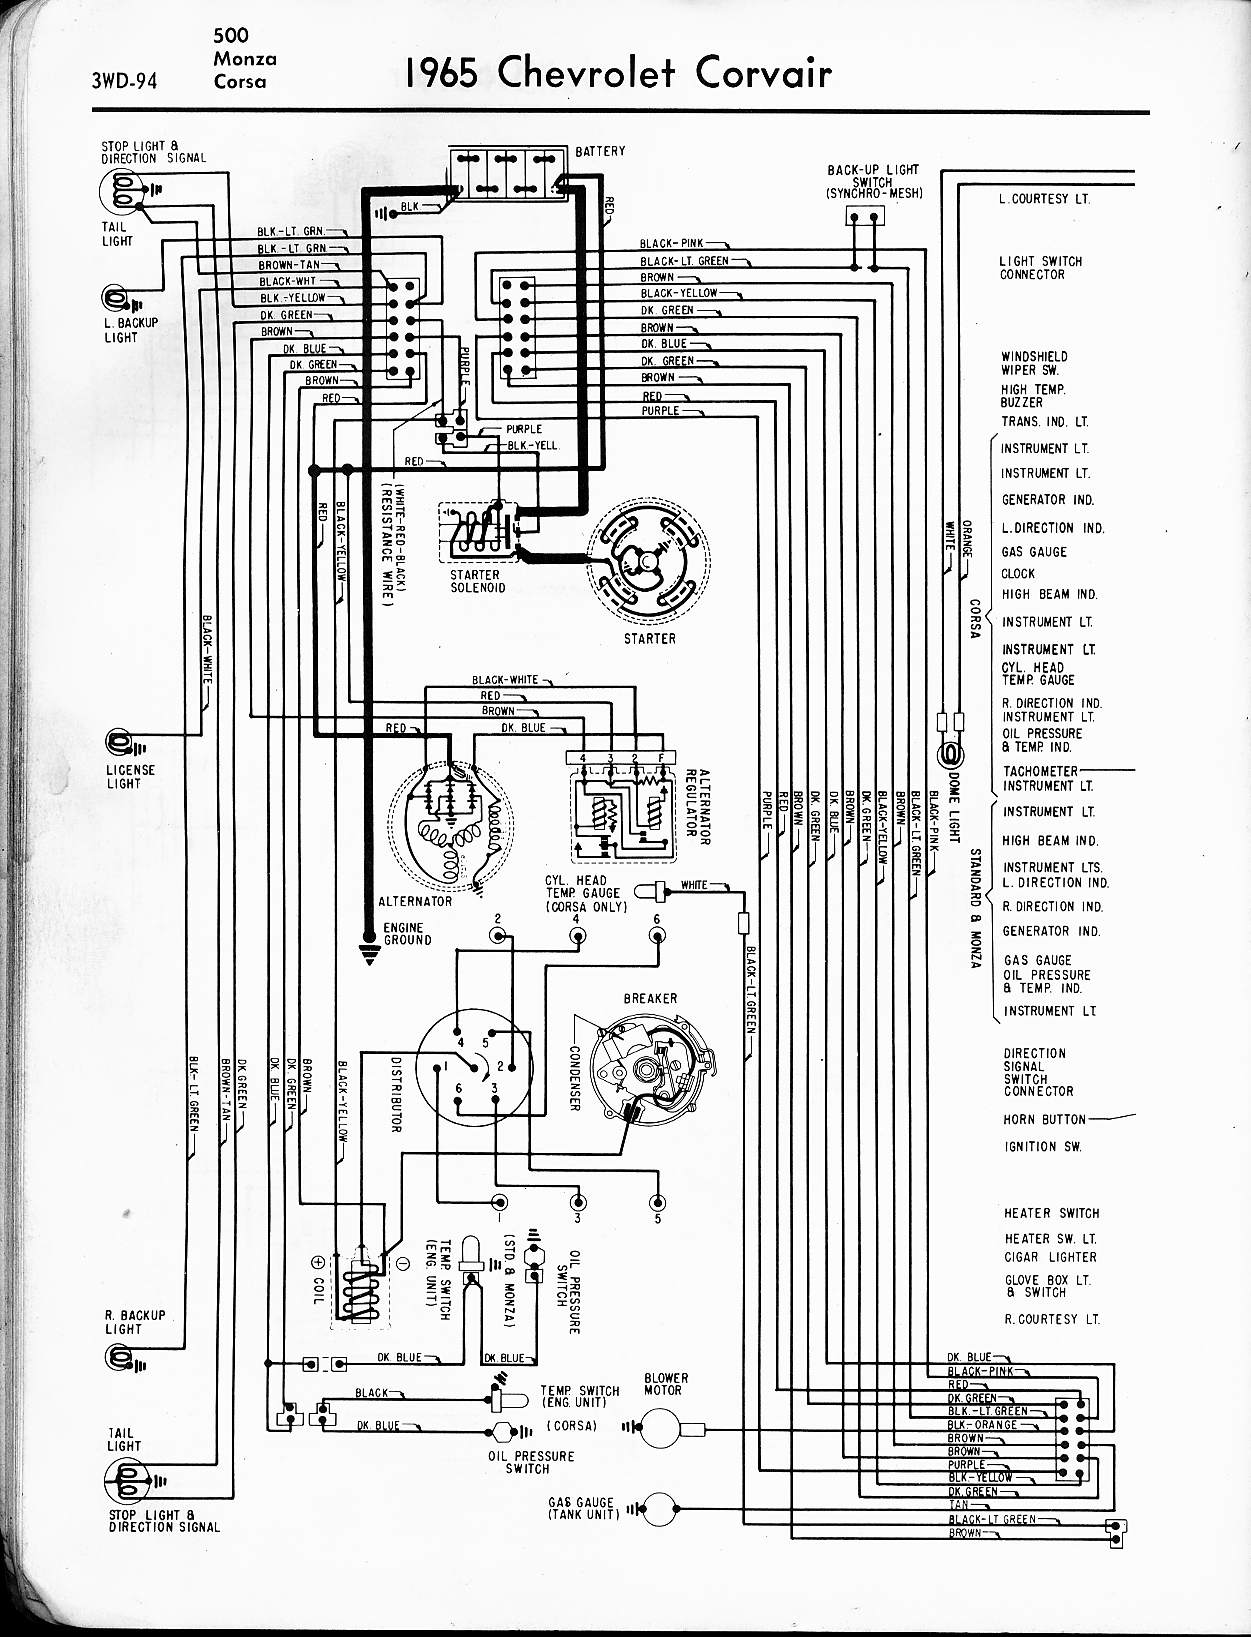 [WRG-1669] 65 Impala Ignition Wiring Diagram